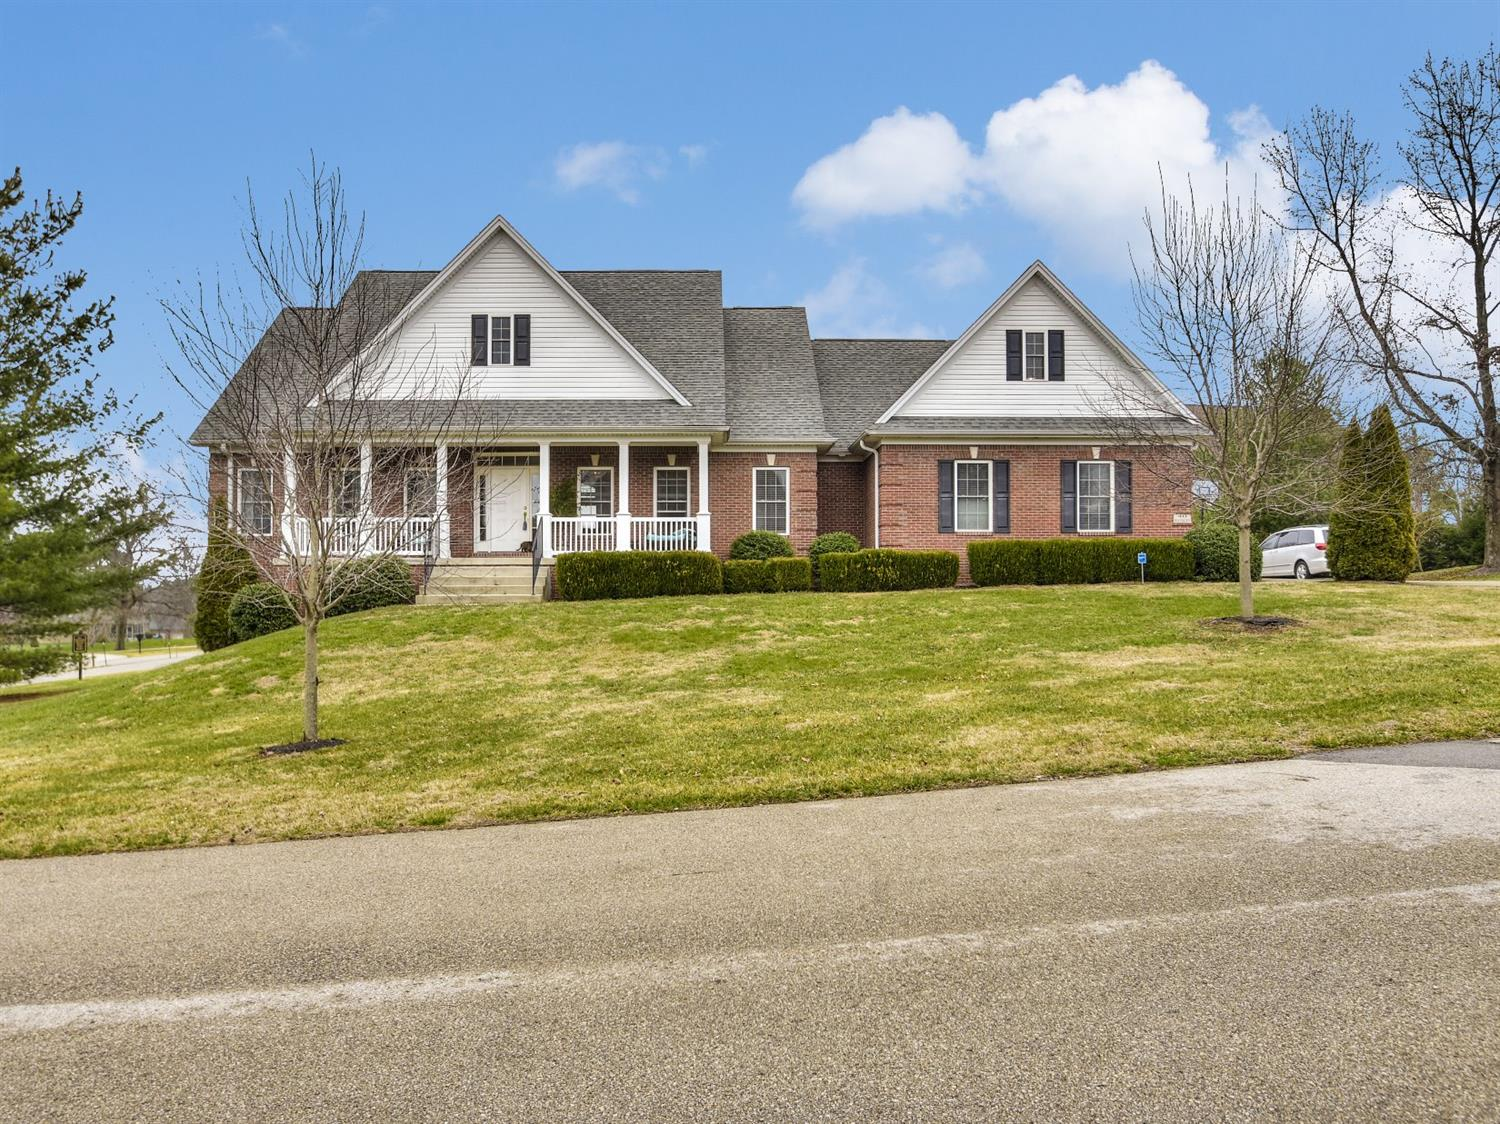 Home For Sale at 207 Stonehedge St, Frankfort, KY 40601